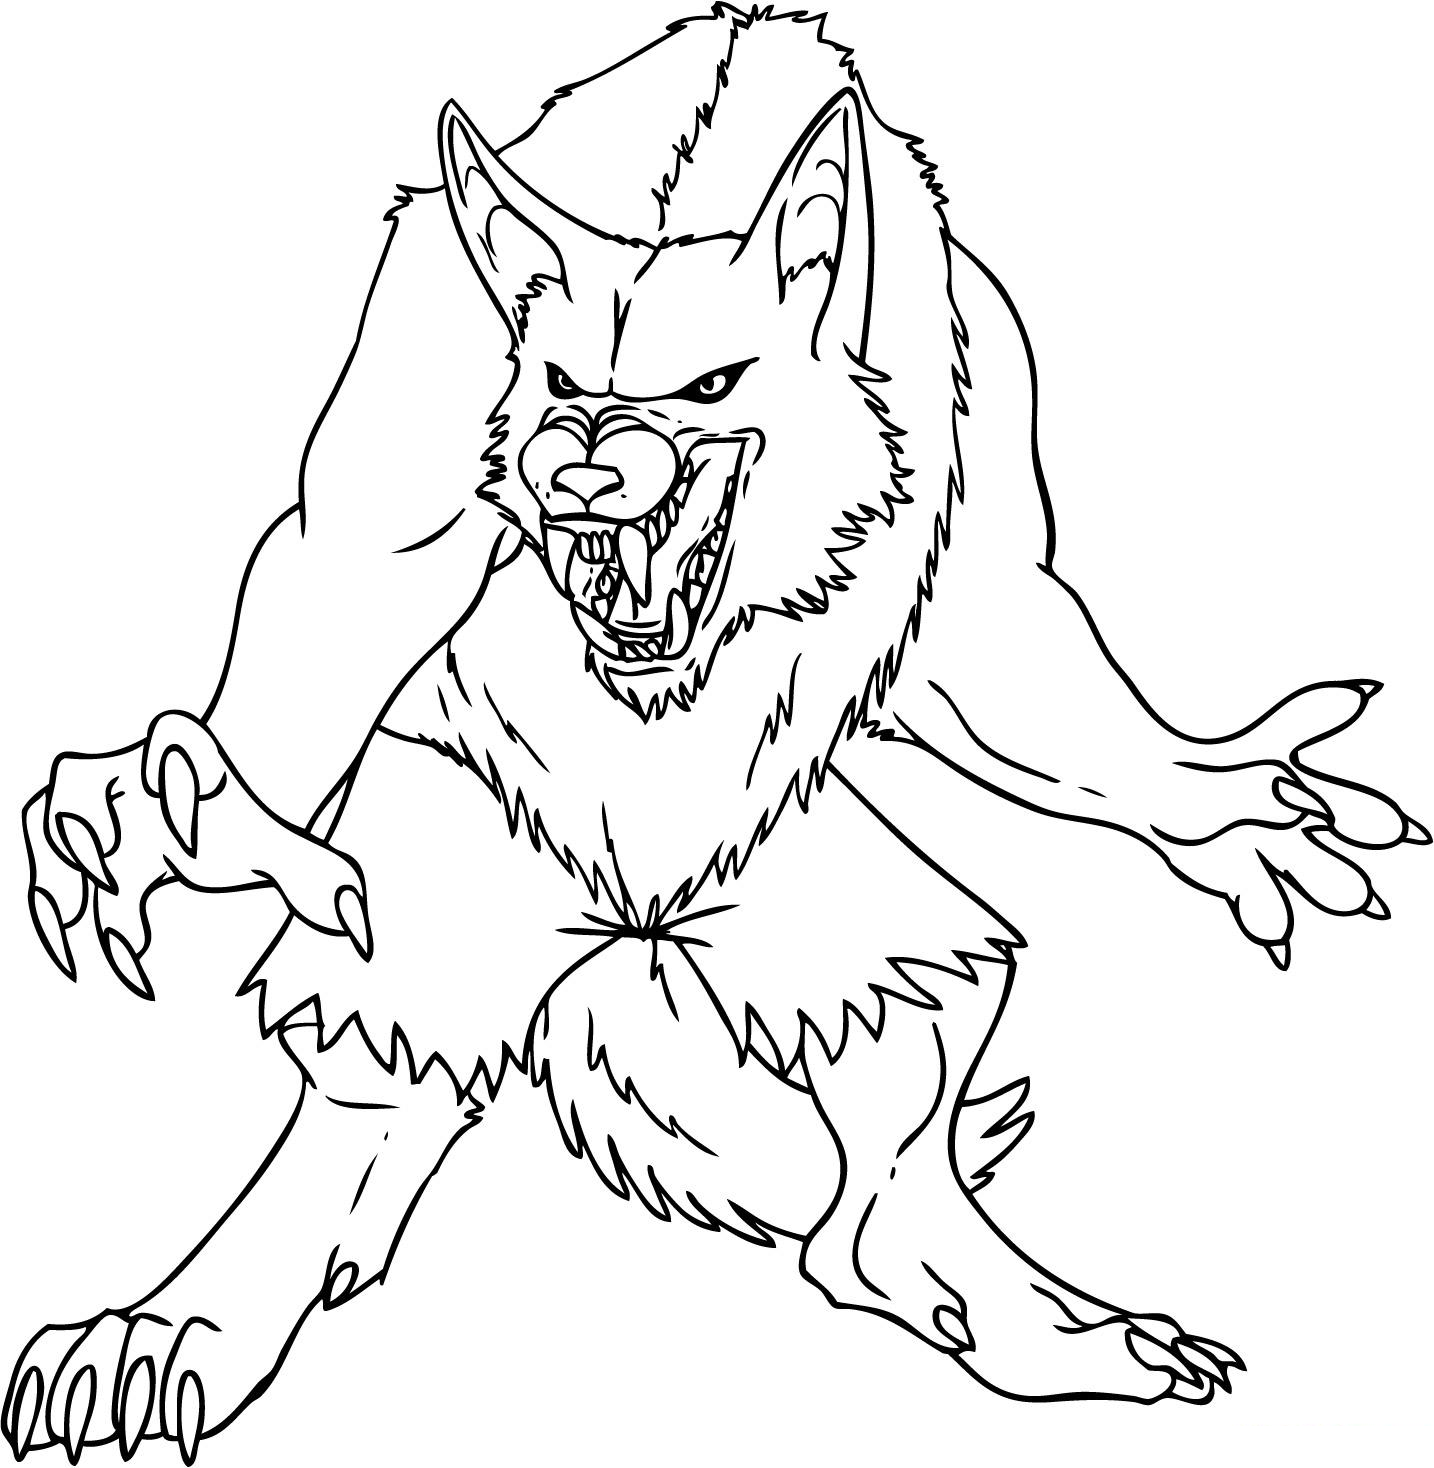 Werewolf Coloring Pages Kids Coloring Pages Free Printable Coloring Pages Download Monster Coloring Pages Werewolf Drawing Werewolf